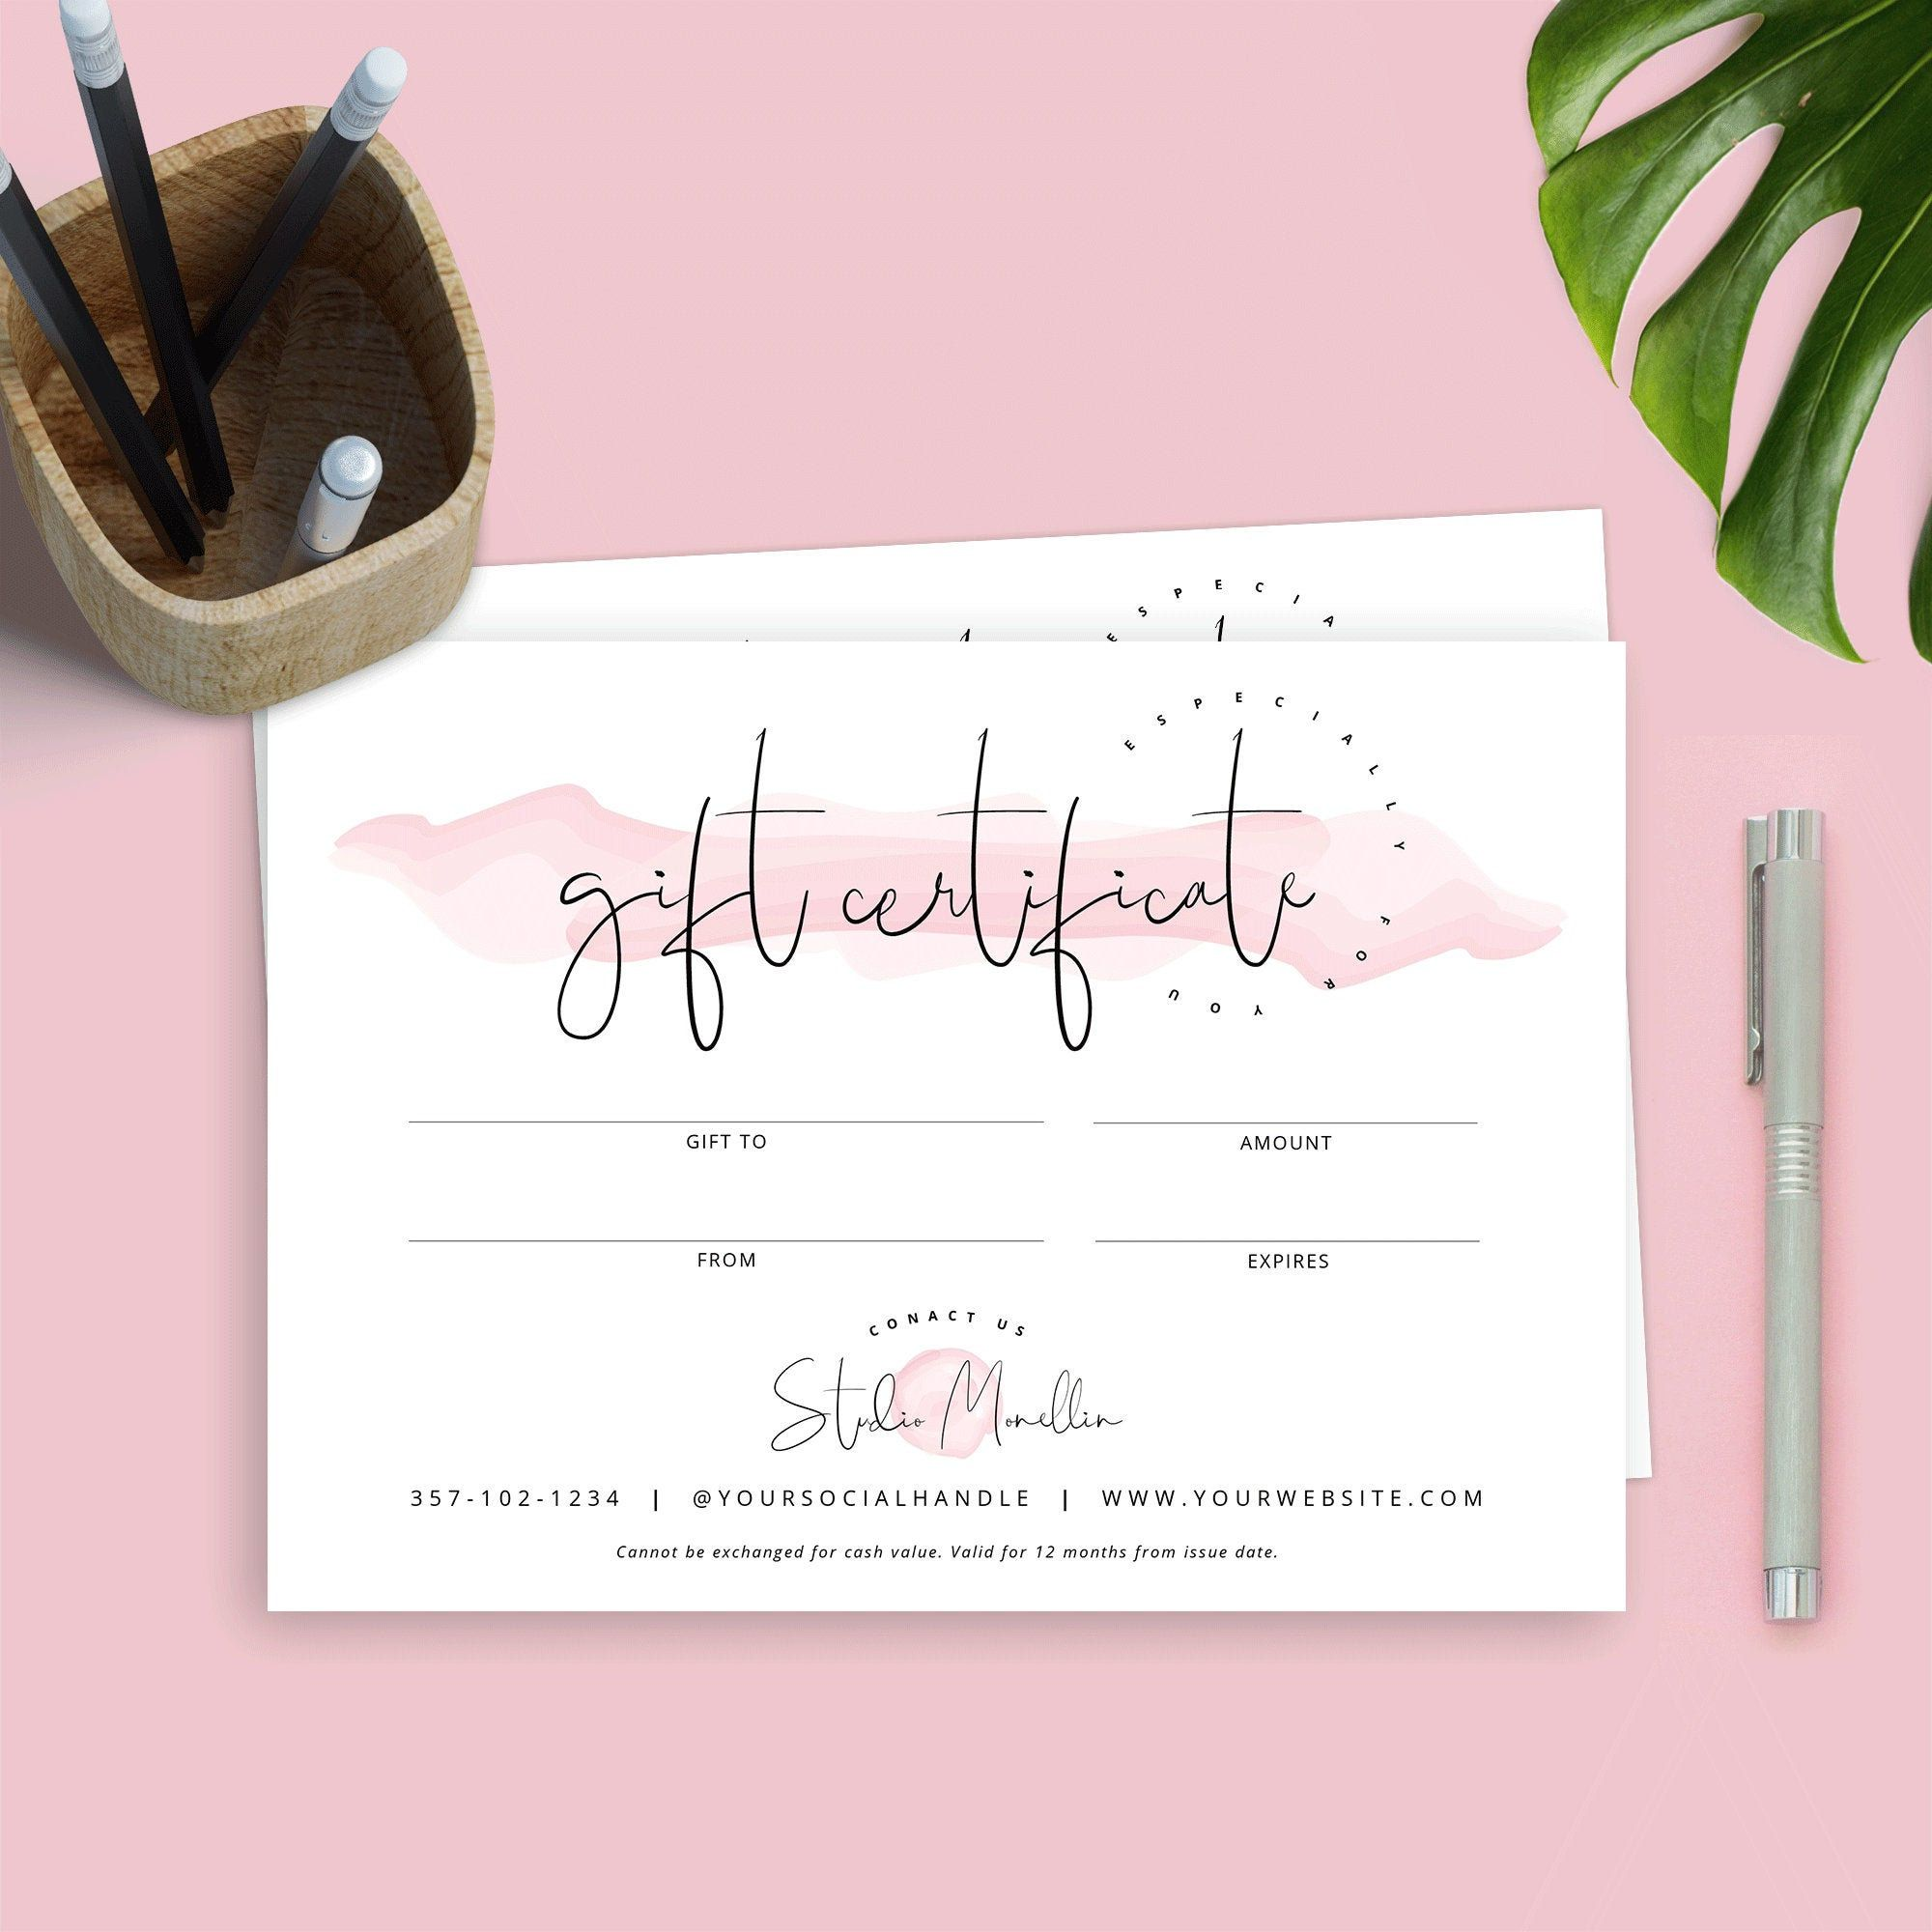 Elegant Gift Certificate Template Mother S Day Gift Etsy Gift Voucher Design Gift Certificate Template Beauty Gift Certificate